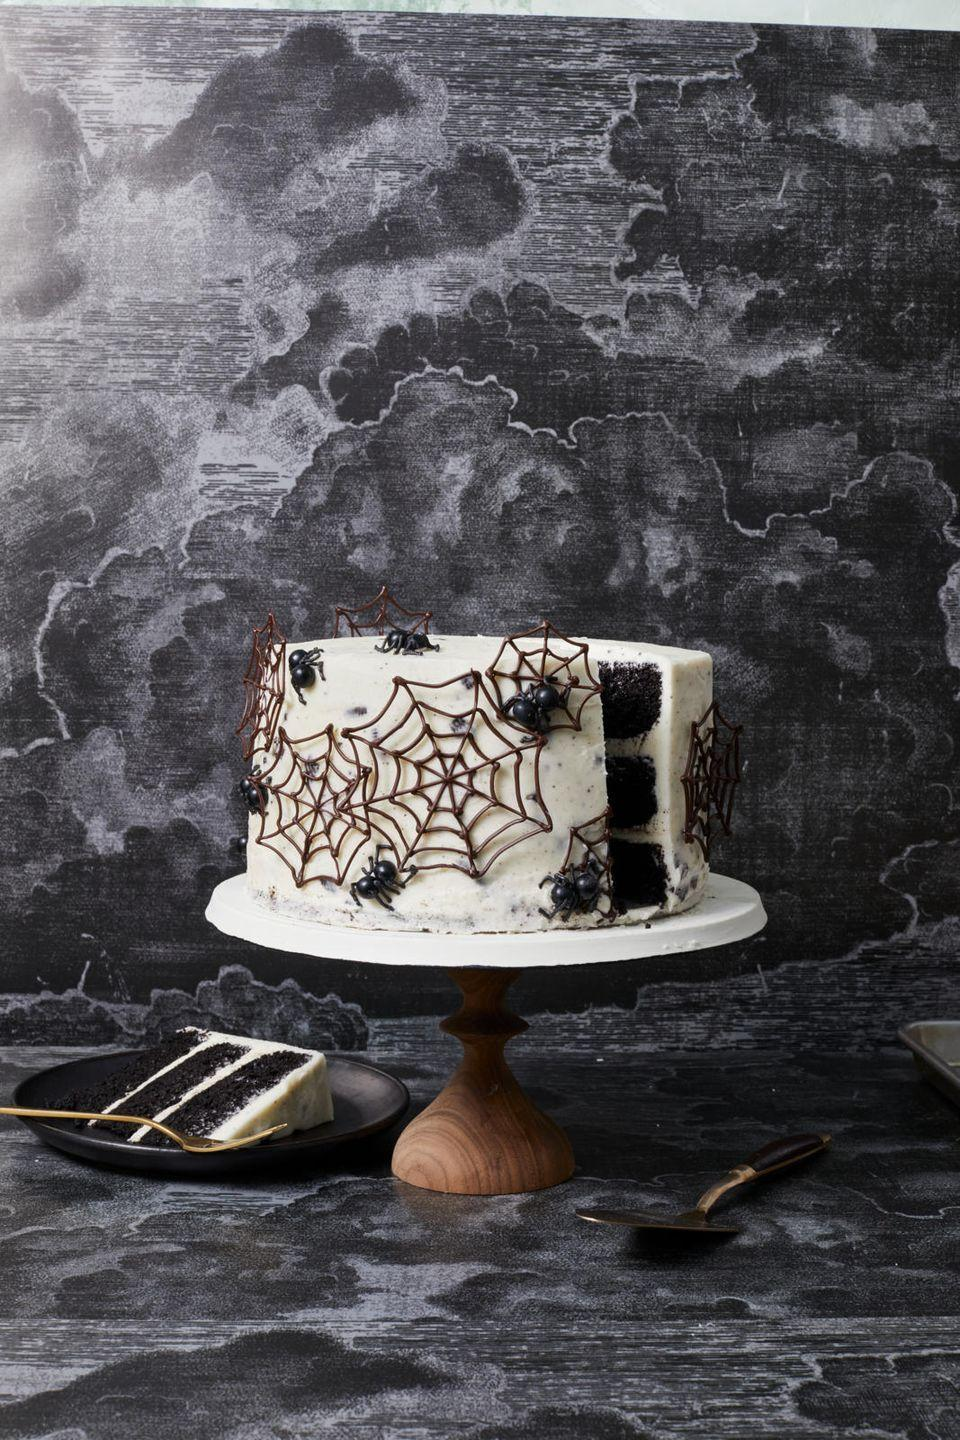 """<p>If you dare … try black cocoa powder for this spooky surprise-inside sweet with a crushed Oreo cookie frosting.</p><p><em><a href=""""https://www.goodhousekeeping.com/food-recipes/dessert/a33461174/spider-web-cake-recipe/"""" rel=""""nofollow noopener"""" target=""""_blank"""" data-ylk=""""slk:Get the recipe for Spider Web Cake »"""" class=""""link rapid-noclick-resp"""">Get the recipe for Spider Web Cake »</a></em></p>"""